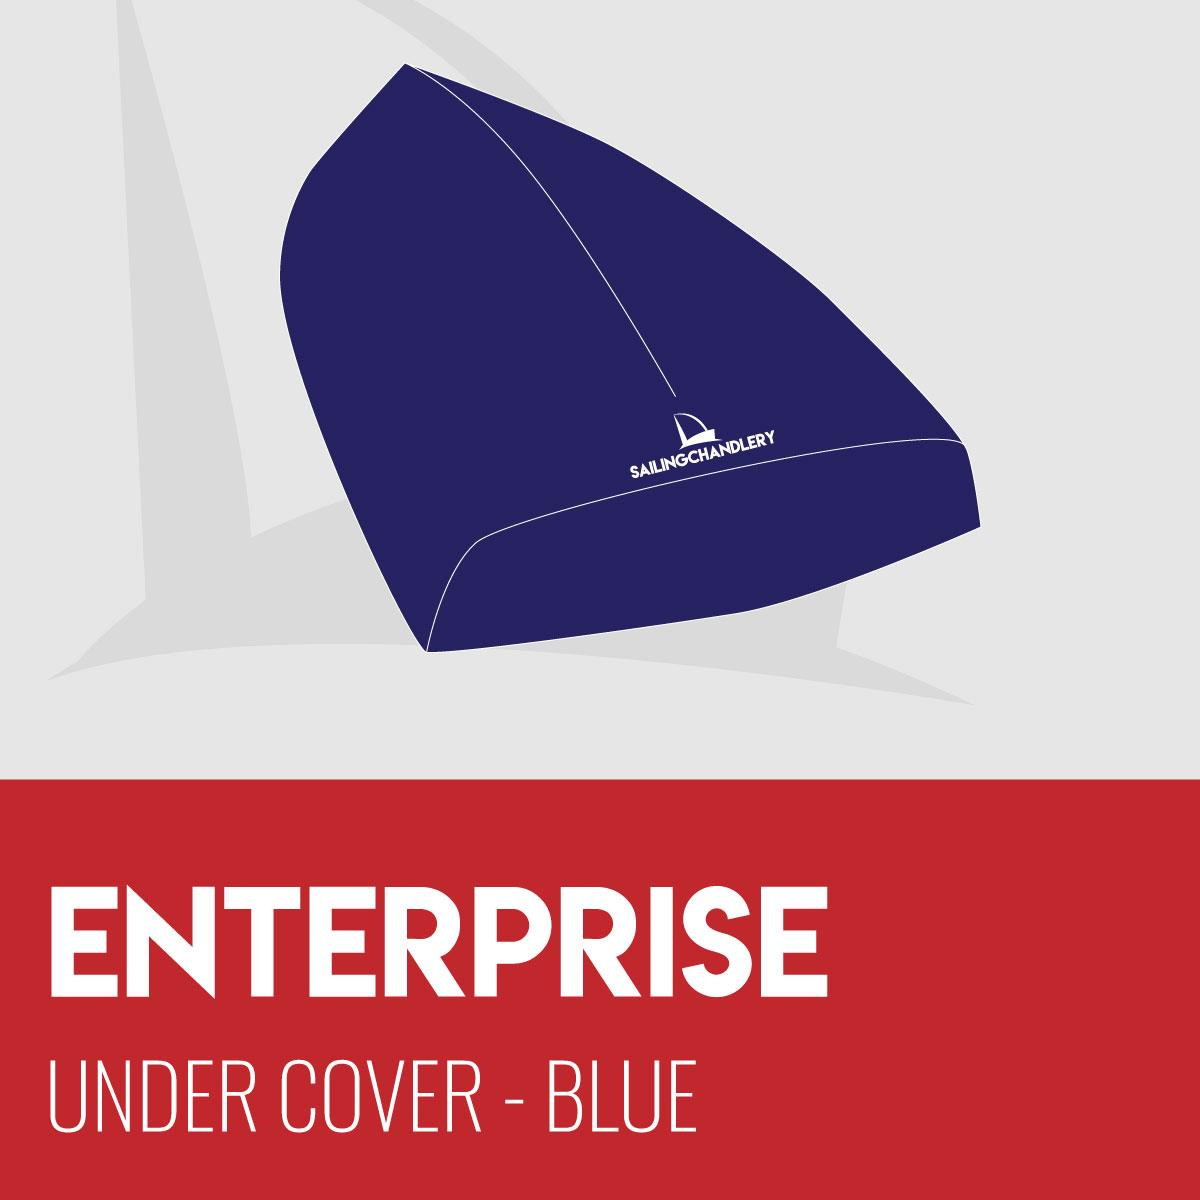 Enterprise Under Cover